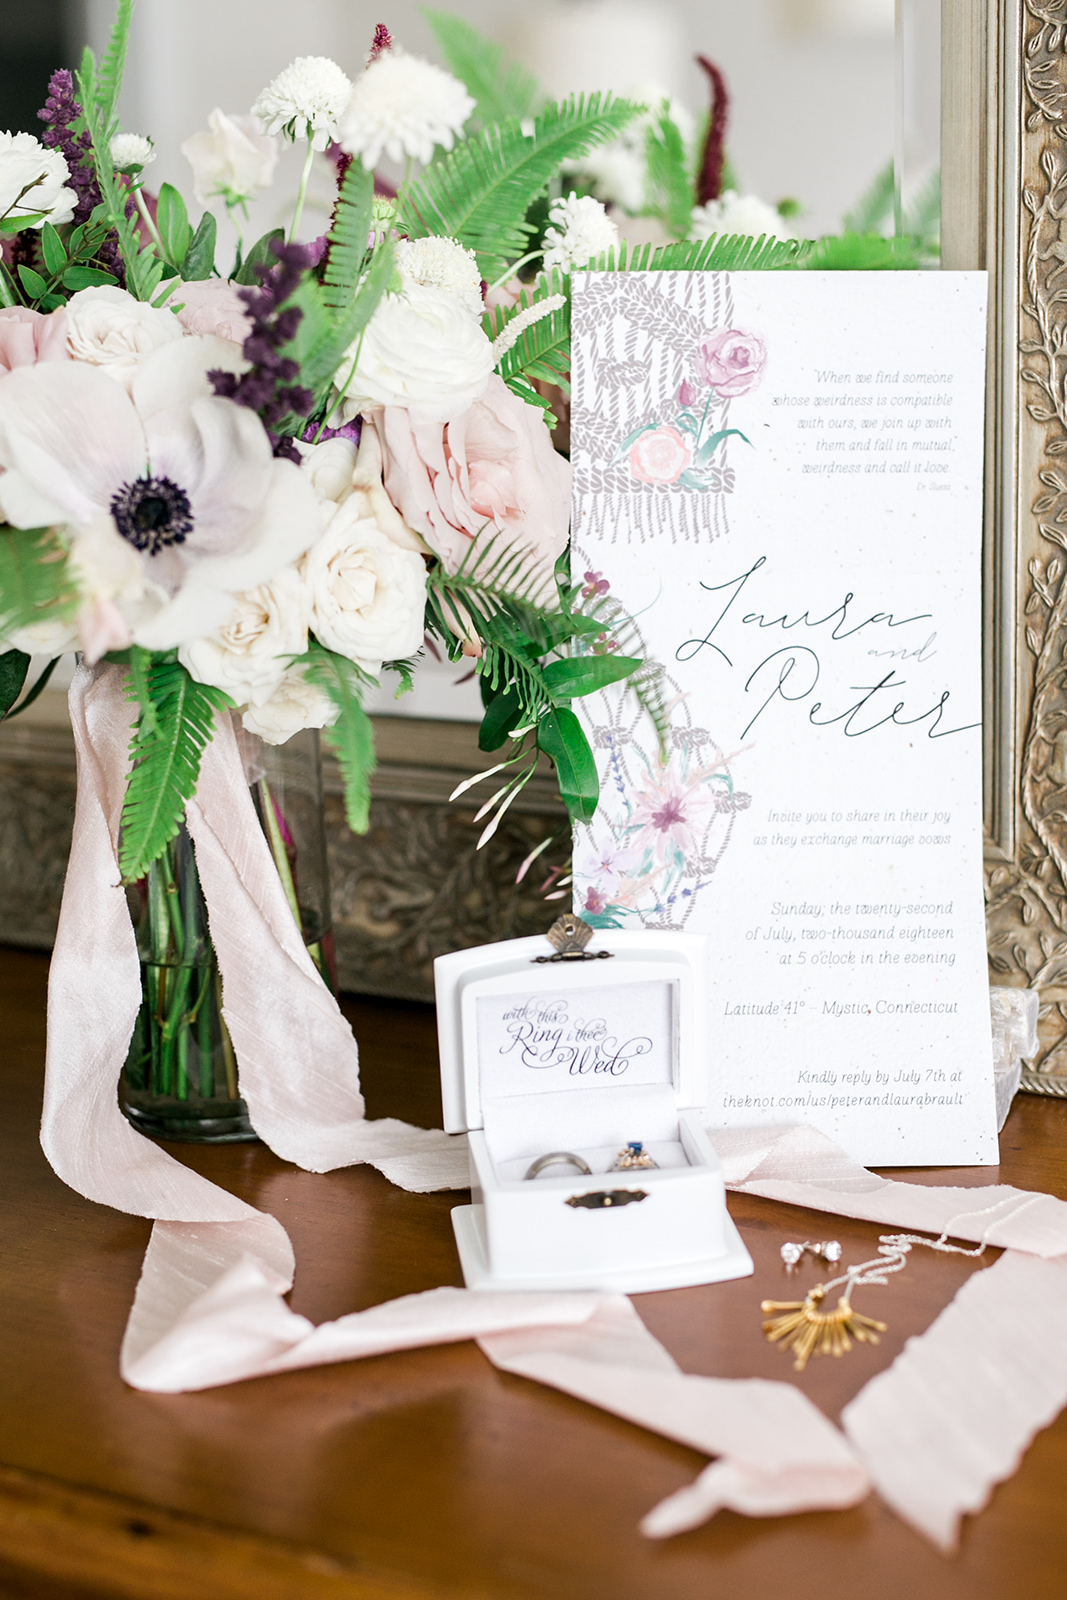 Whole wedding invitations and Pine and Petal florals - Pearl Weddings & Events